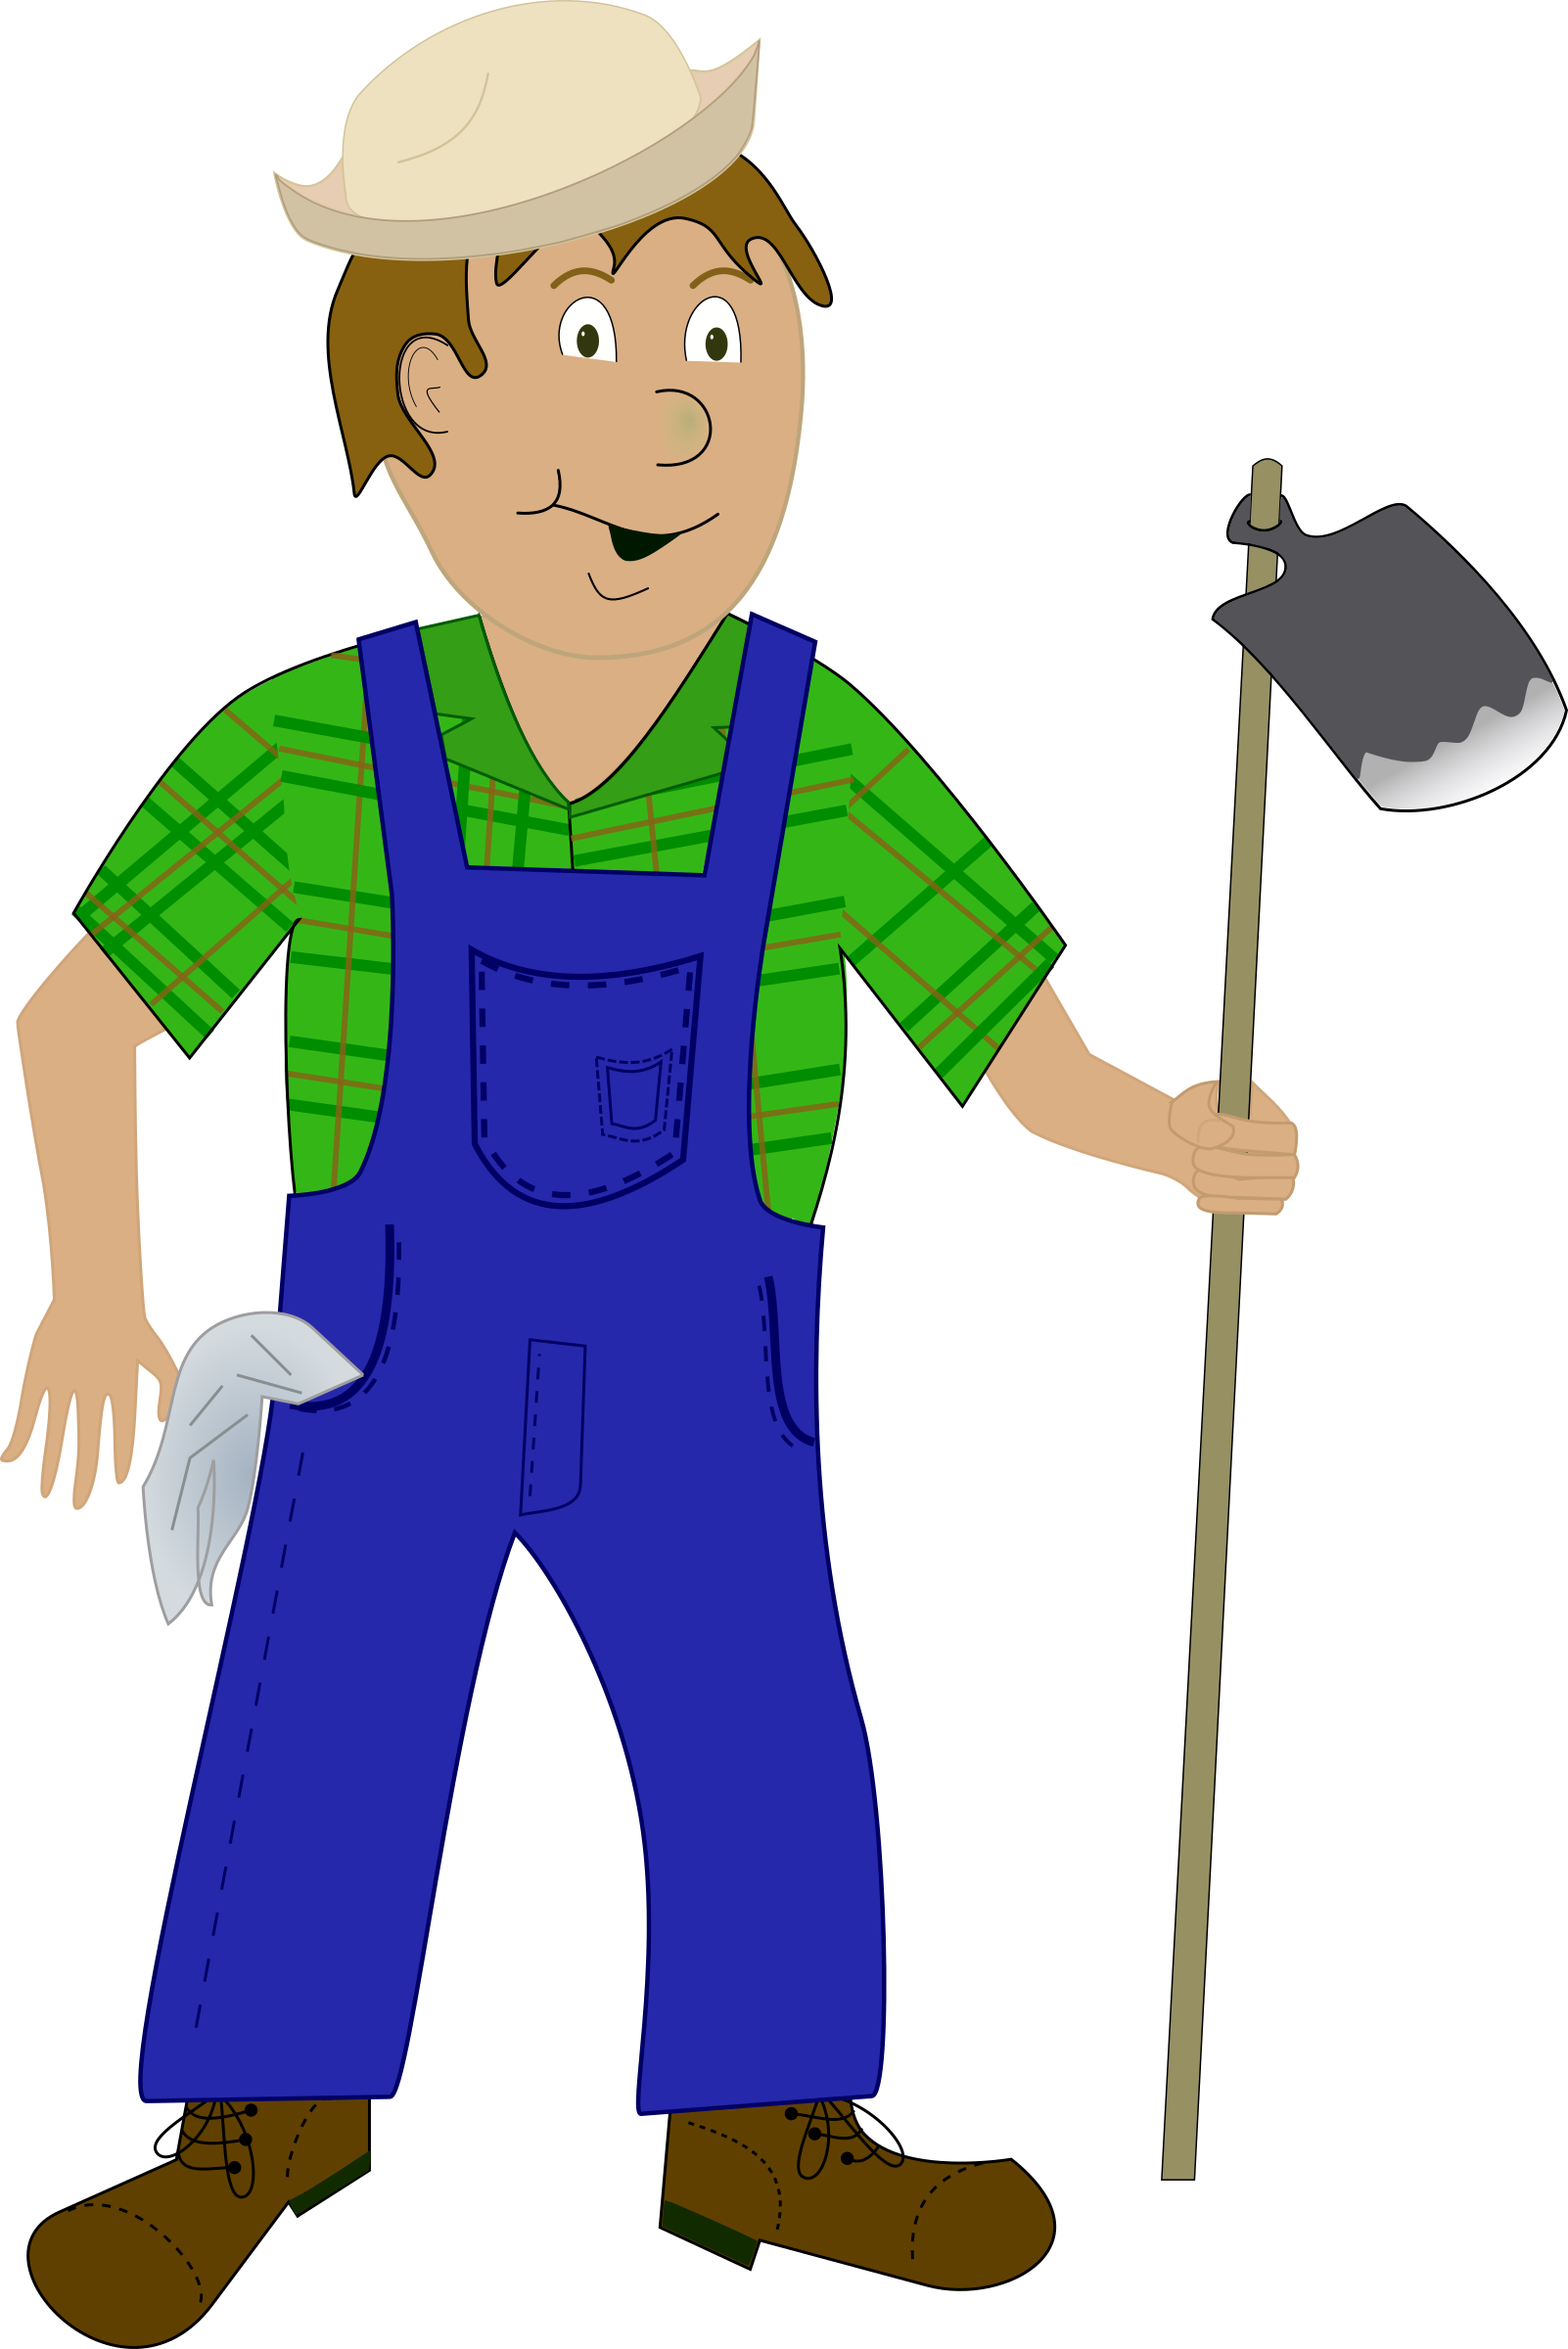 Farming clipart farm worker. Farmer big image png